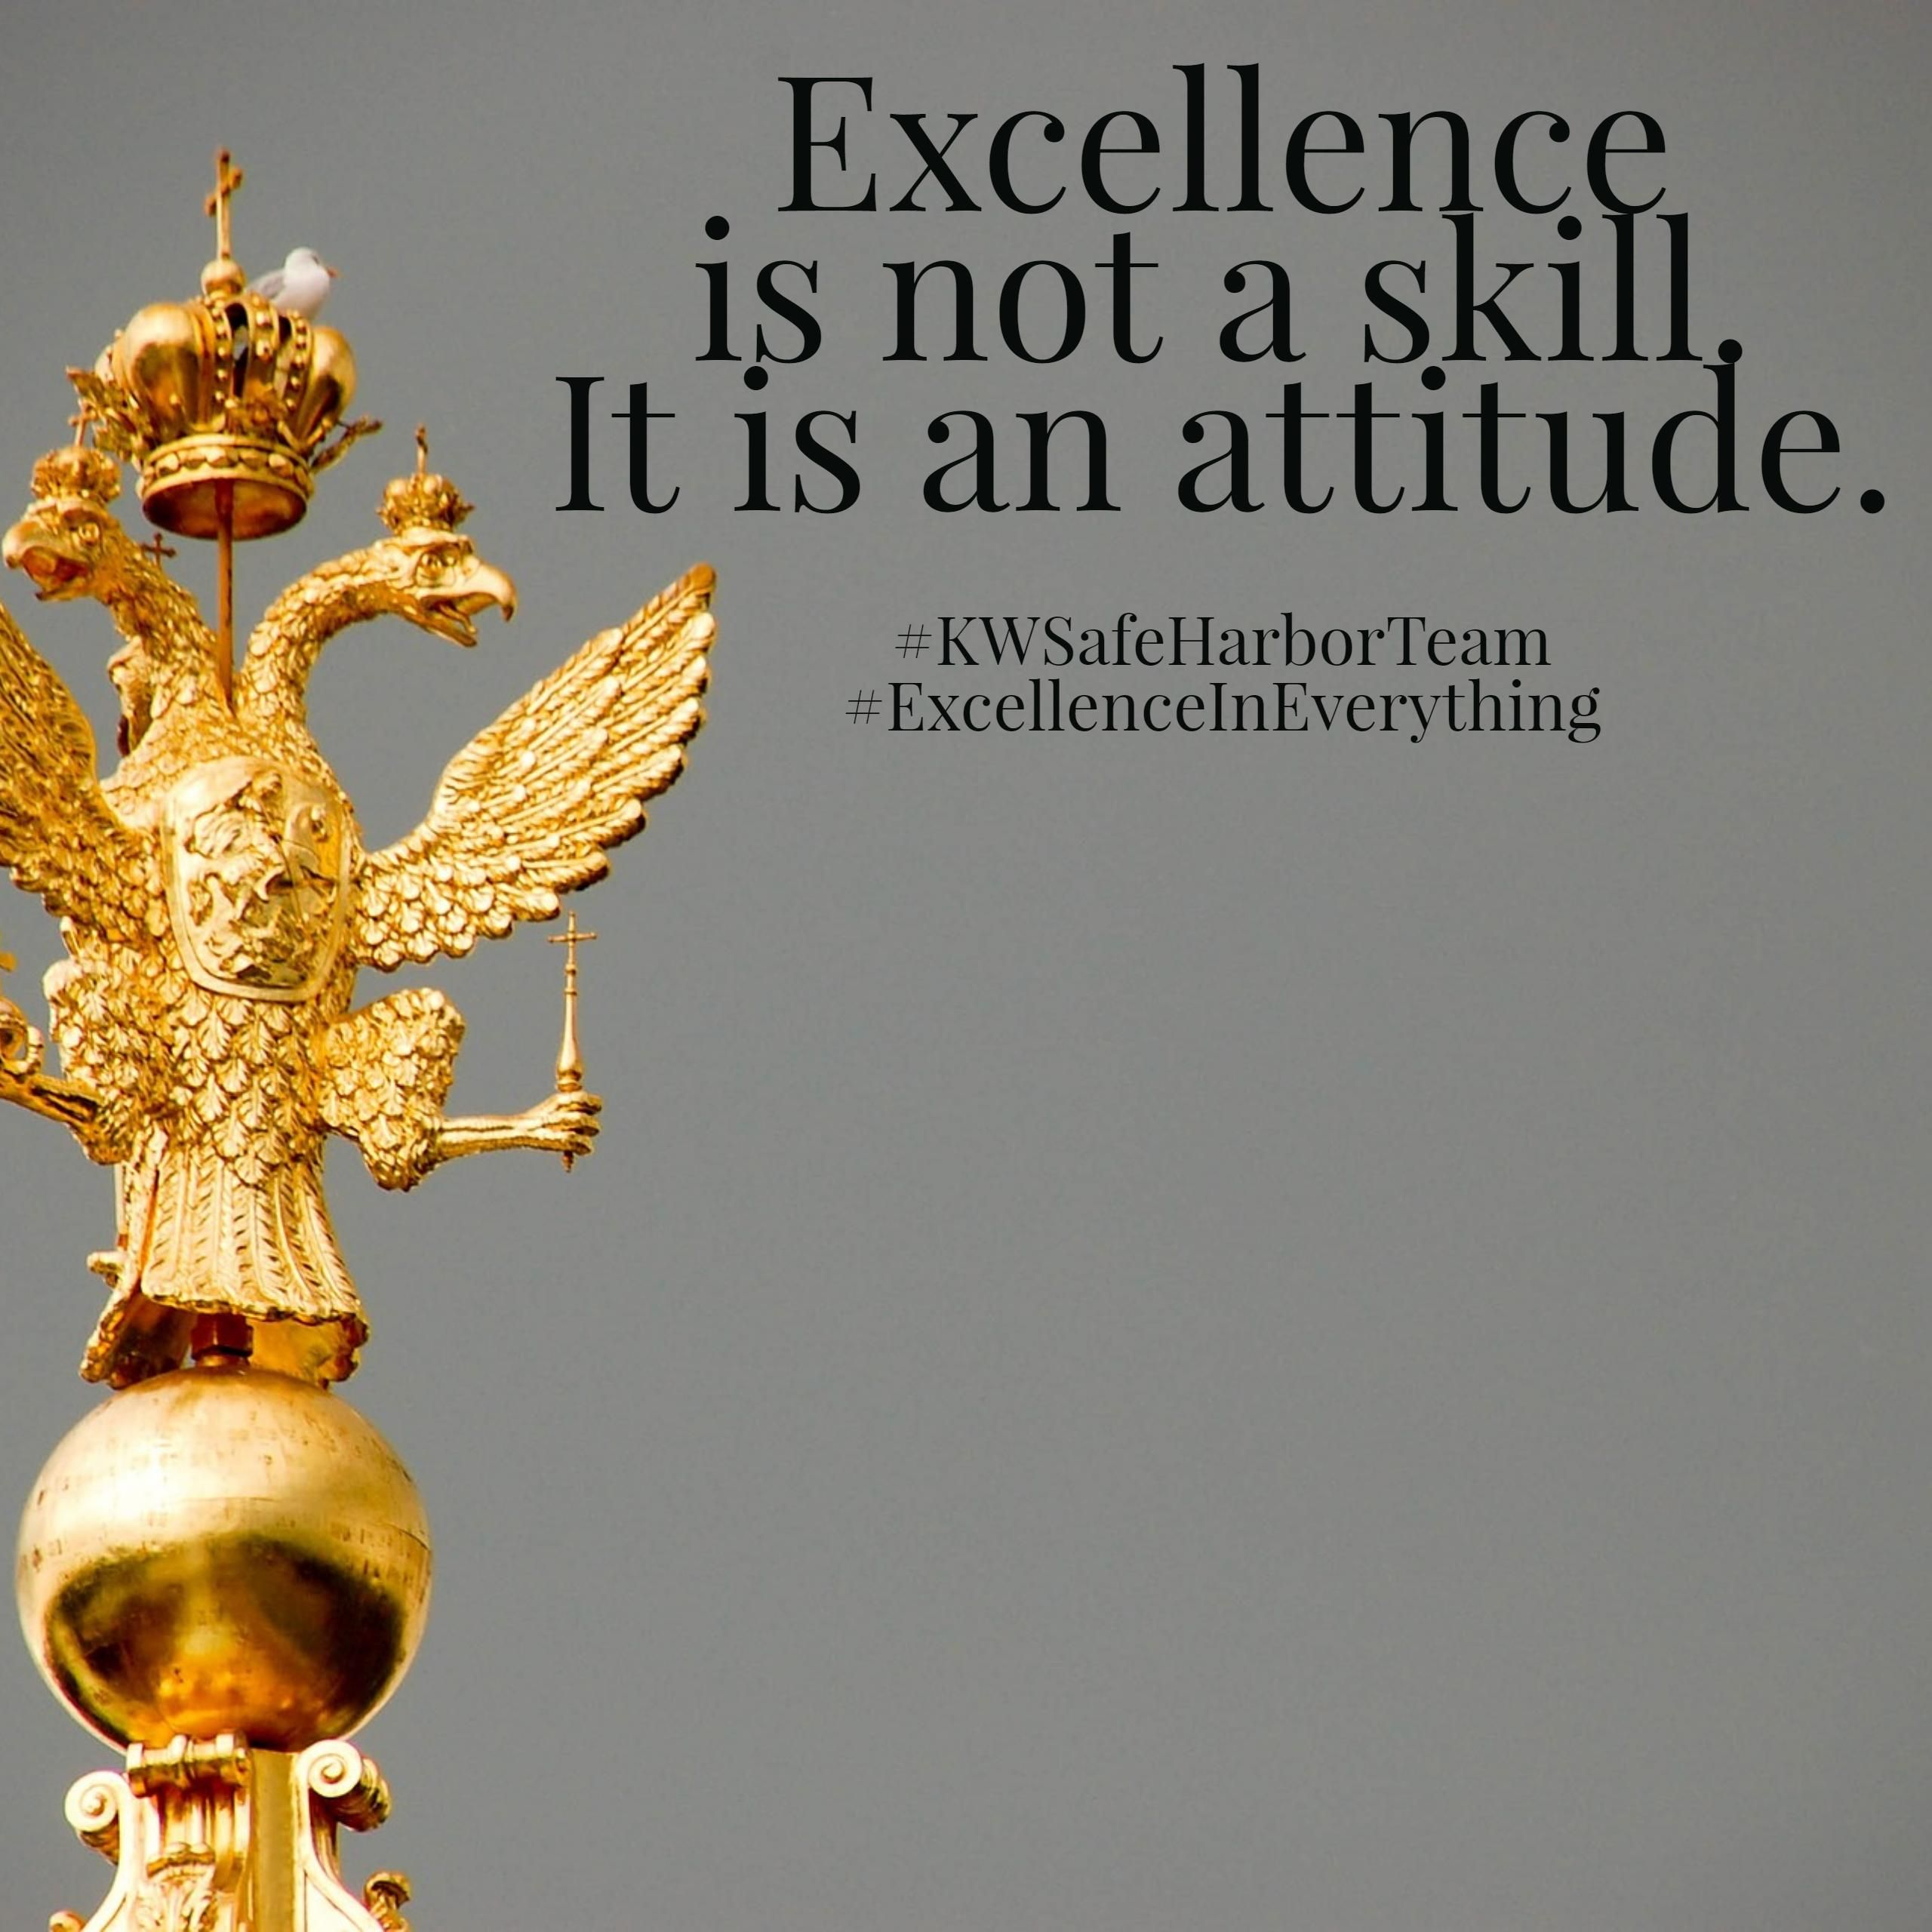 Excellence is the gradual result of always striving to do better.  #KWSafeHarborTeam #ExcellenceInEverything